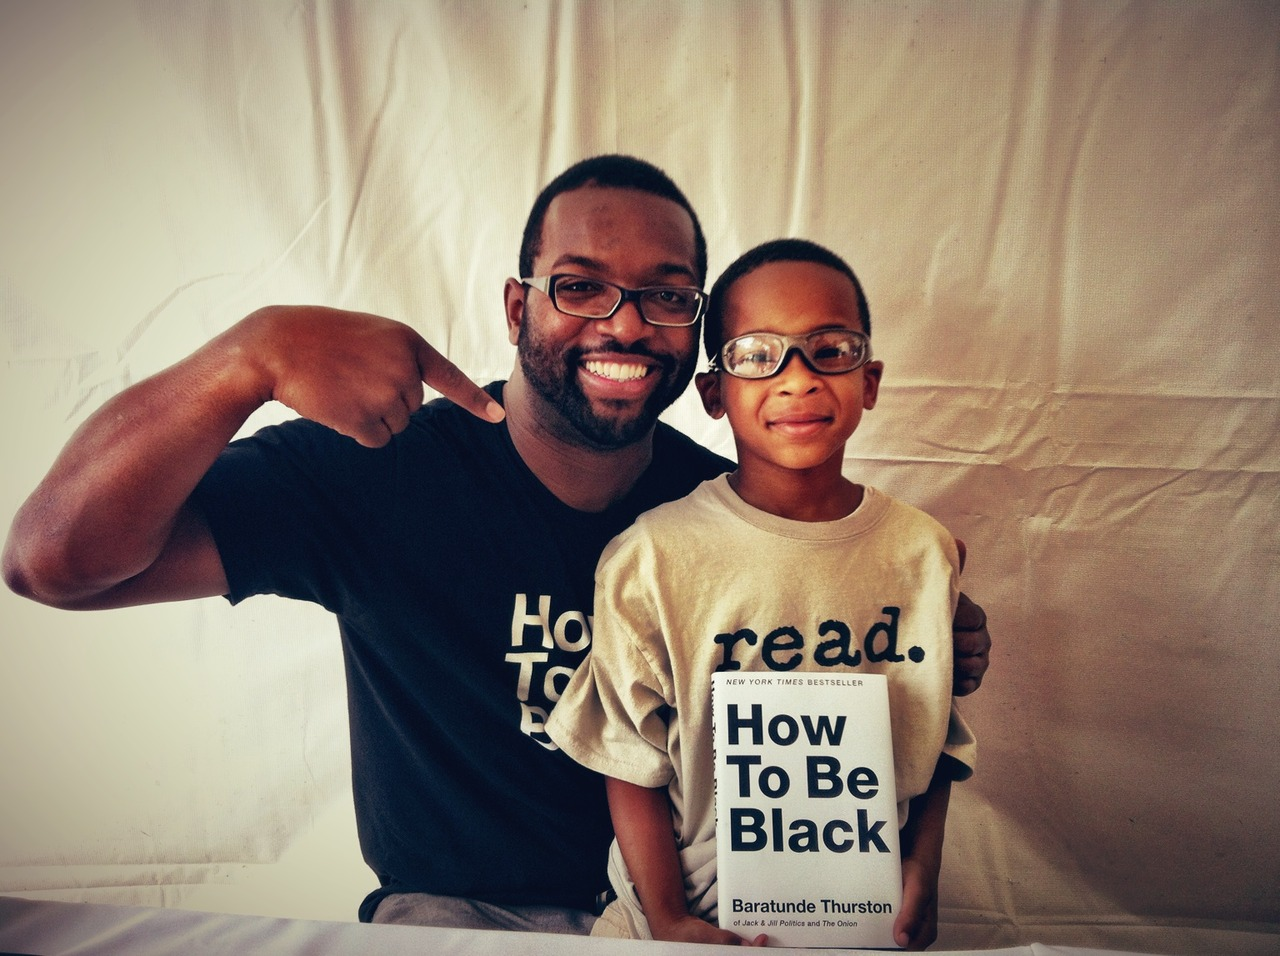 This adorable and innocent child can't be wrong. Read #HowToBeBlack – View on Path.